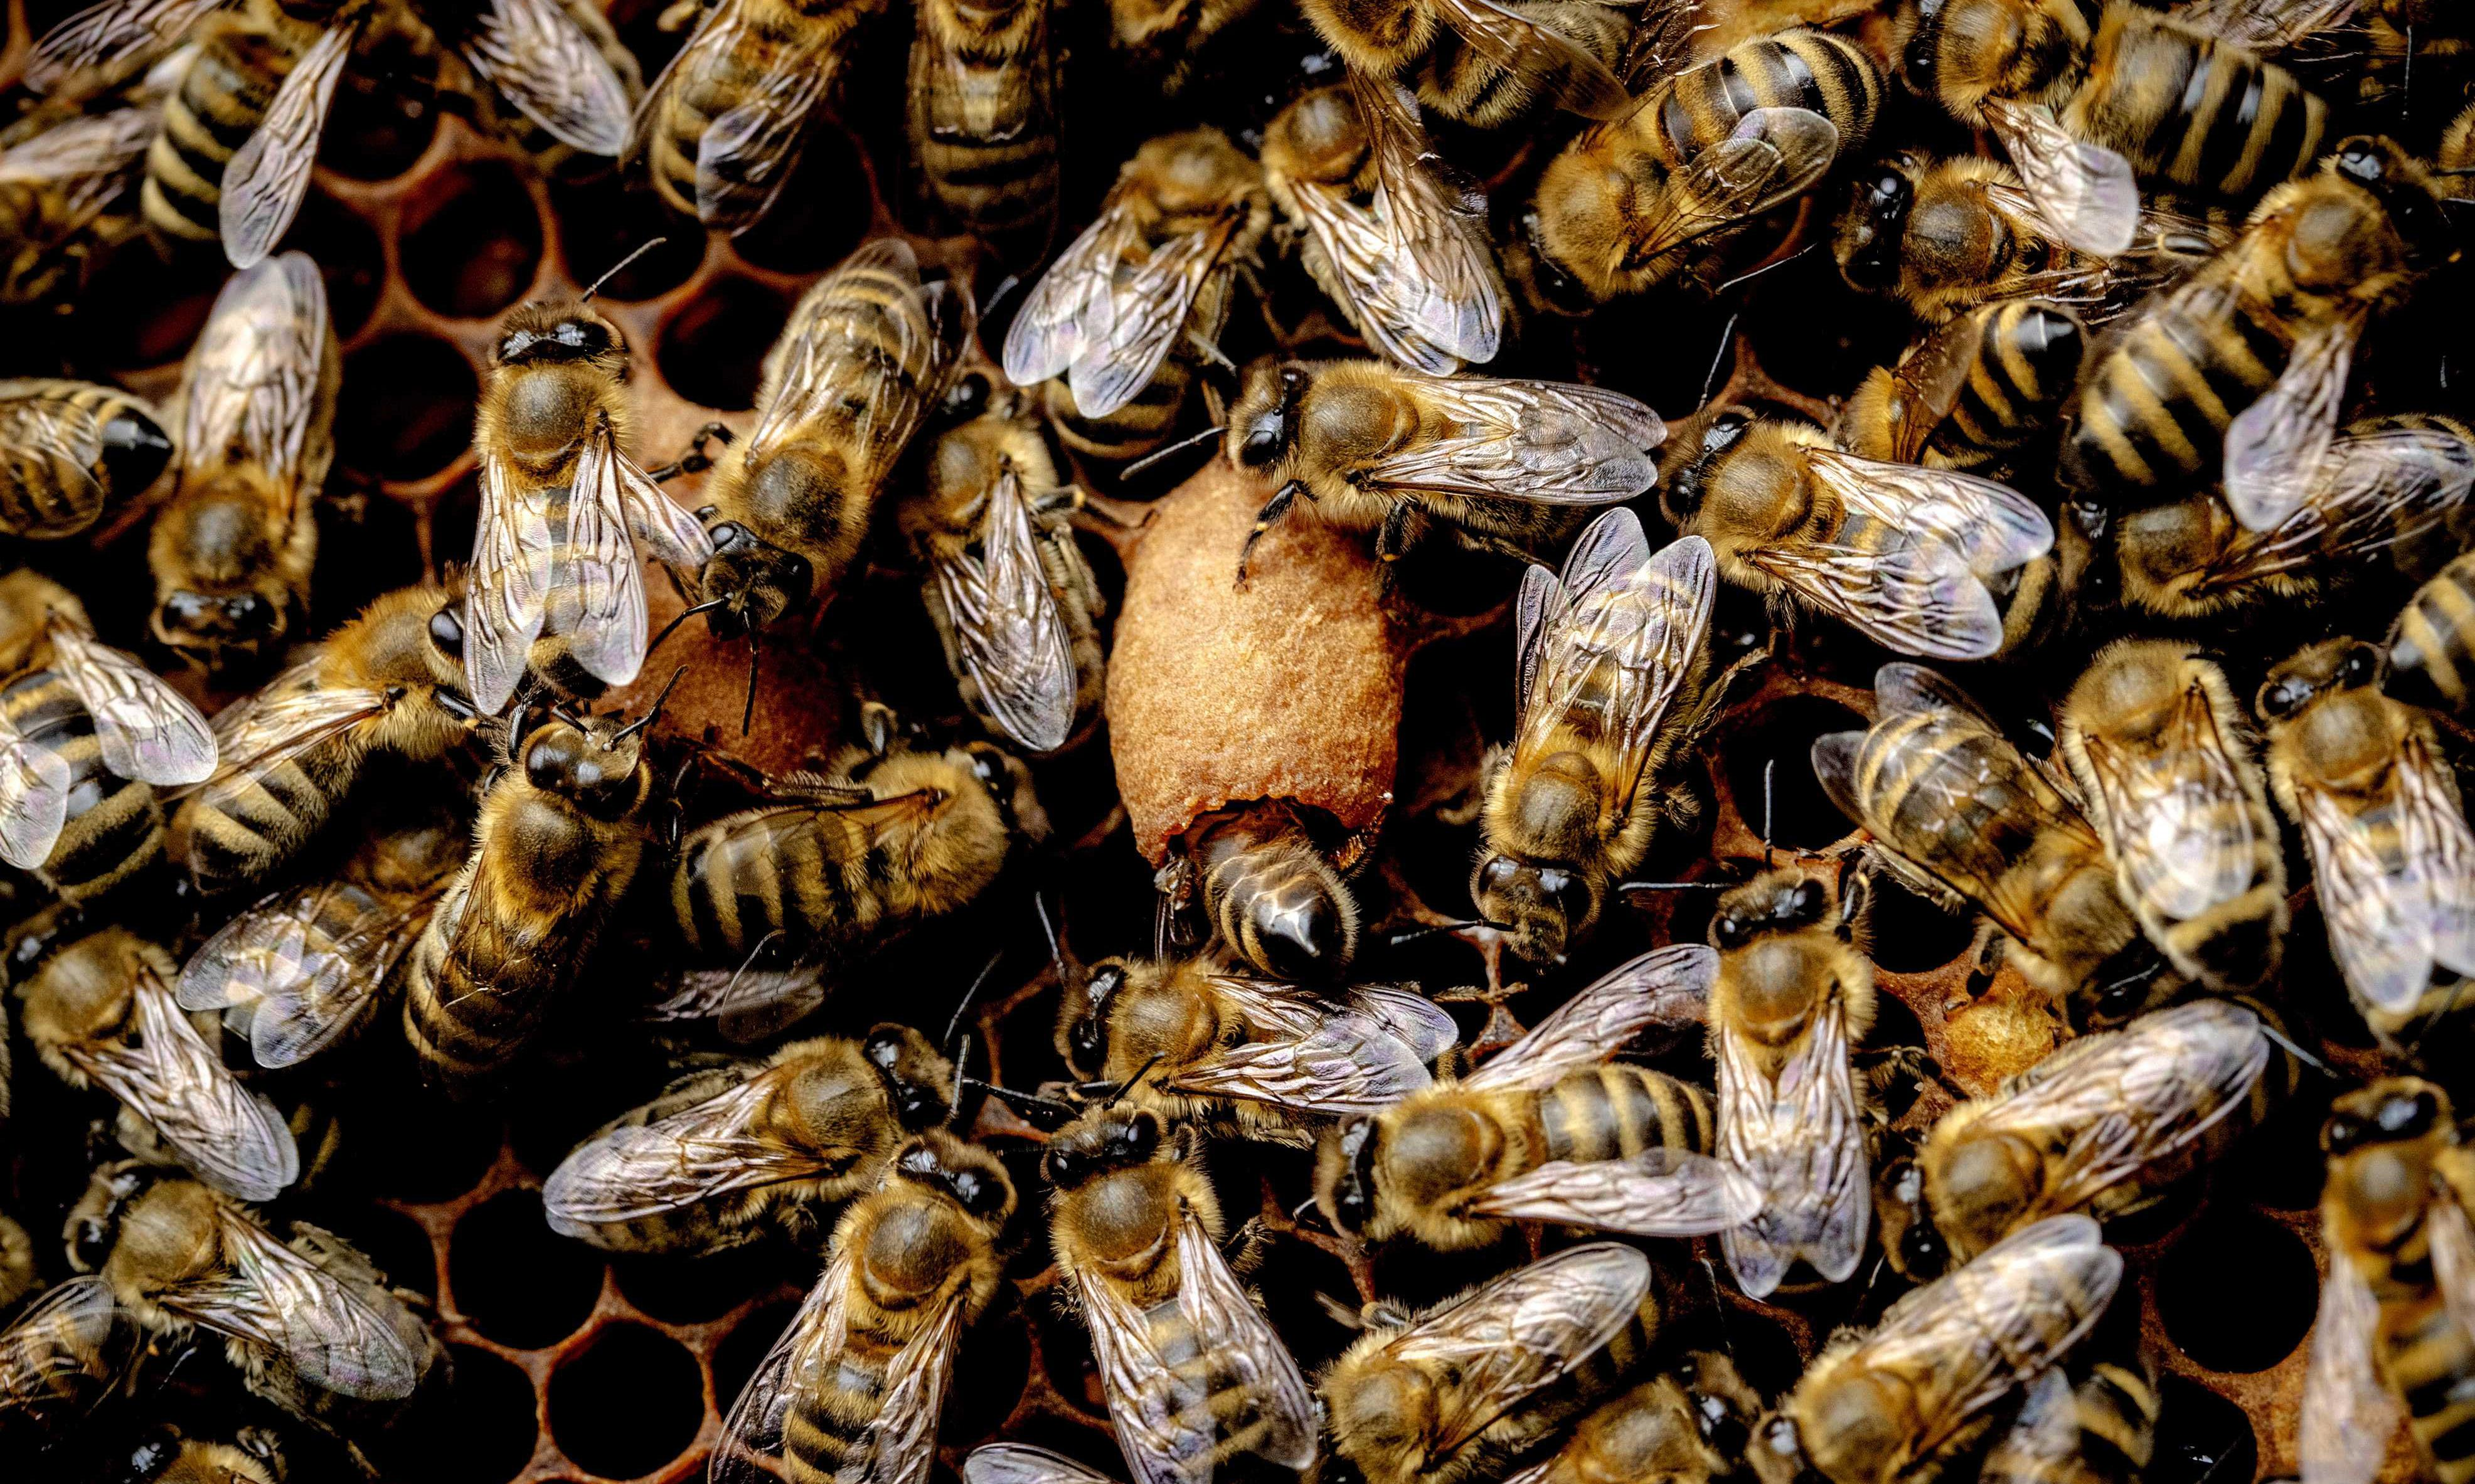 Pesticide widely used in US particularly harmful to bees, study finds